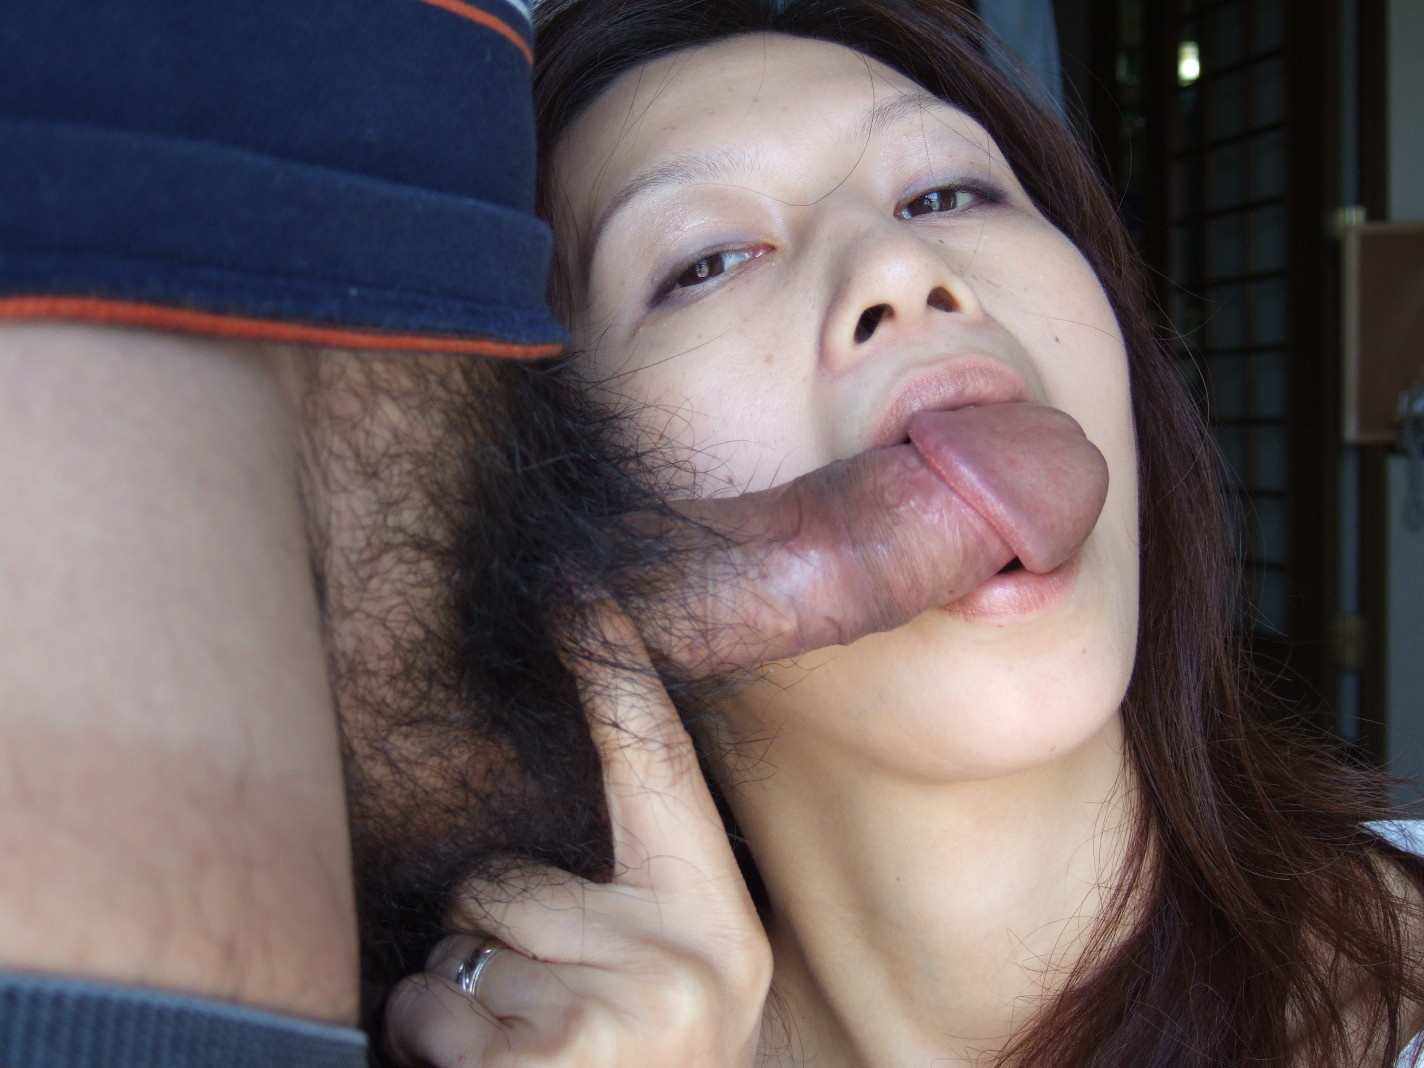 Japanese girl eating cum on food 3